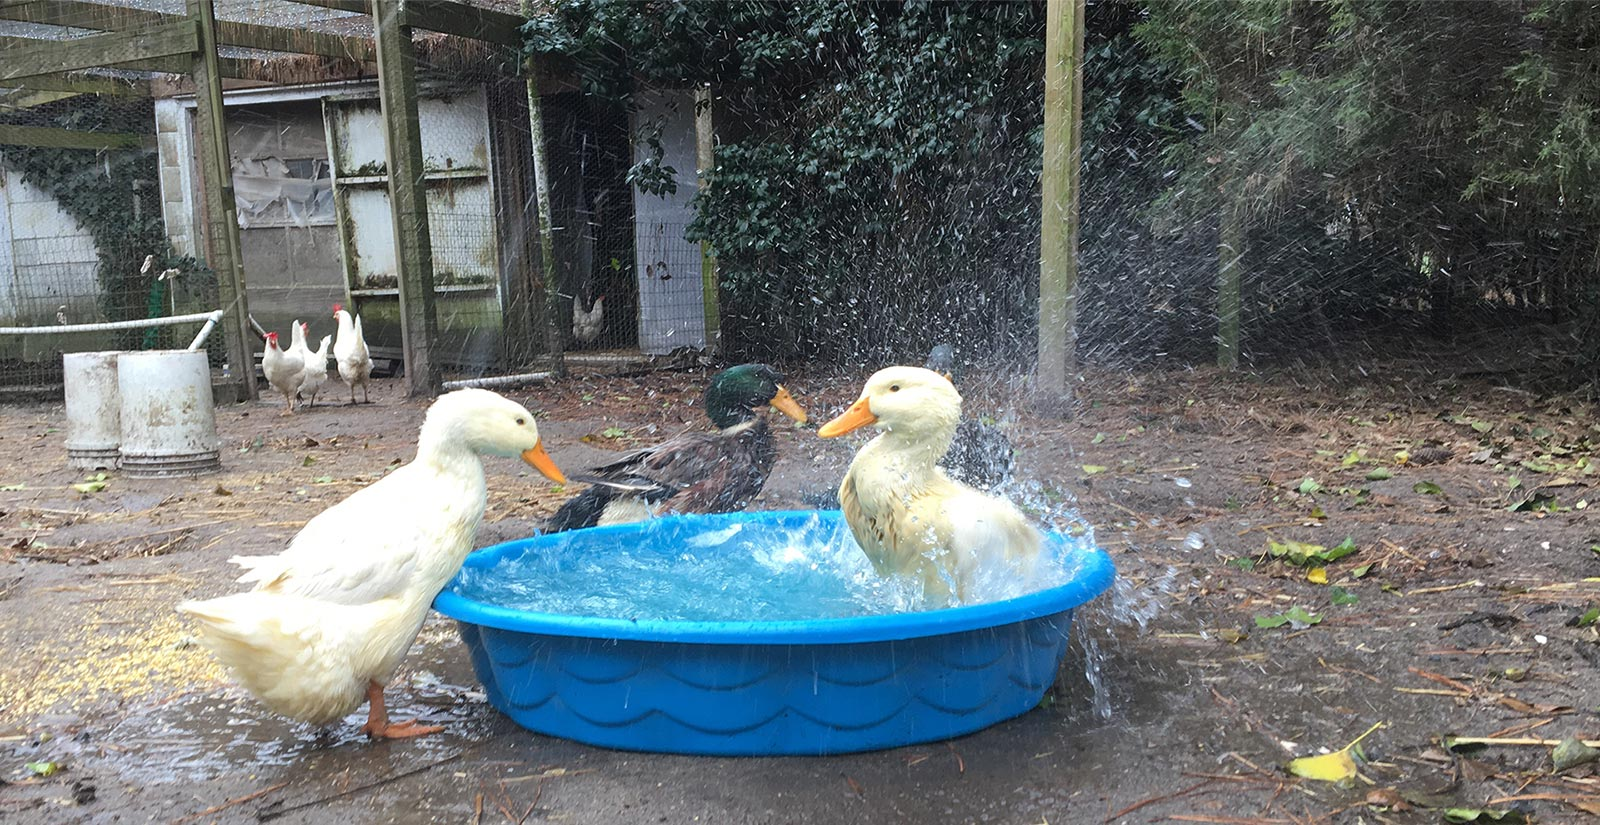 Ducks getting into the pool